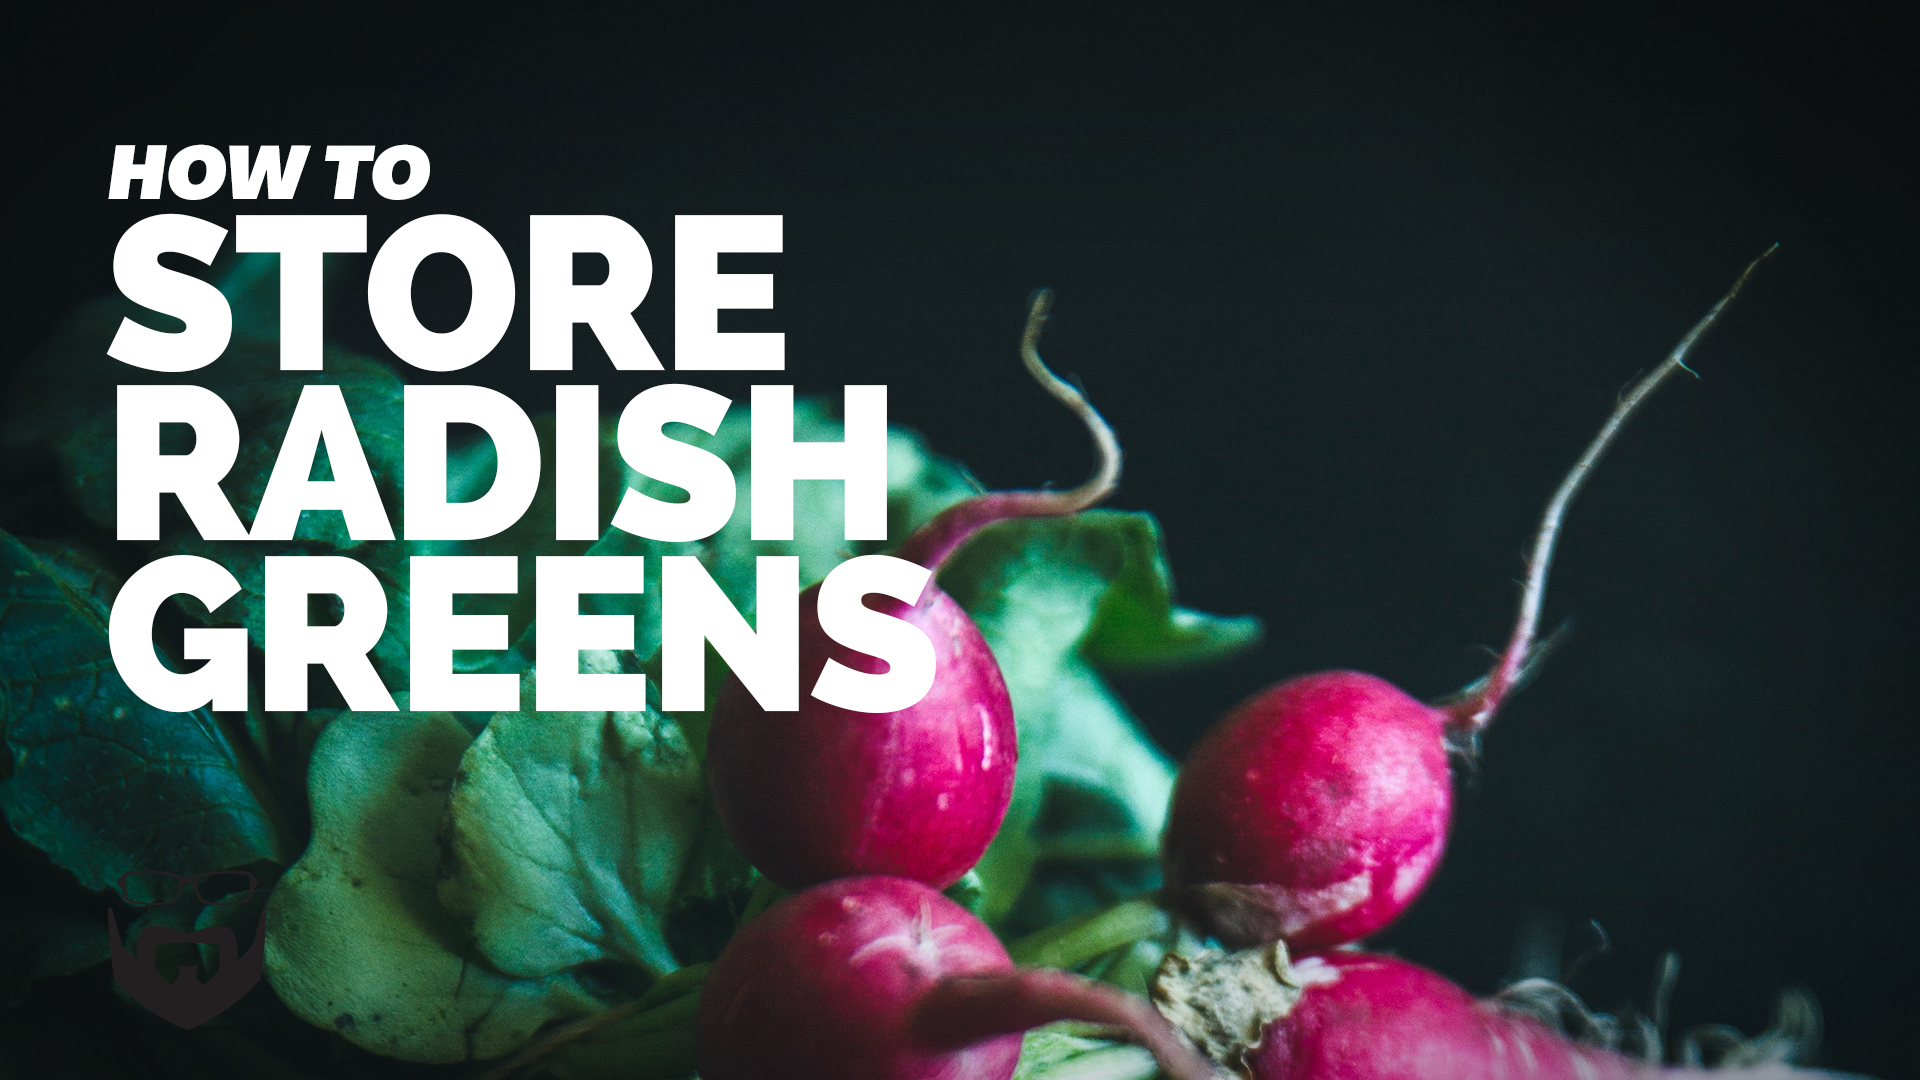 How to Store Radish Greens Video